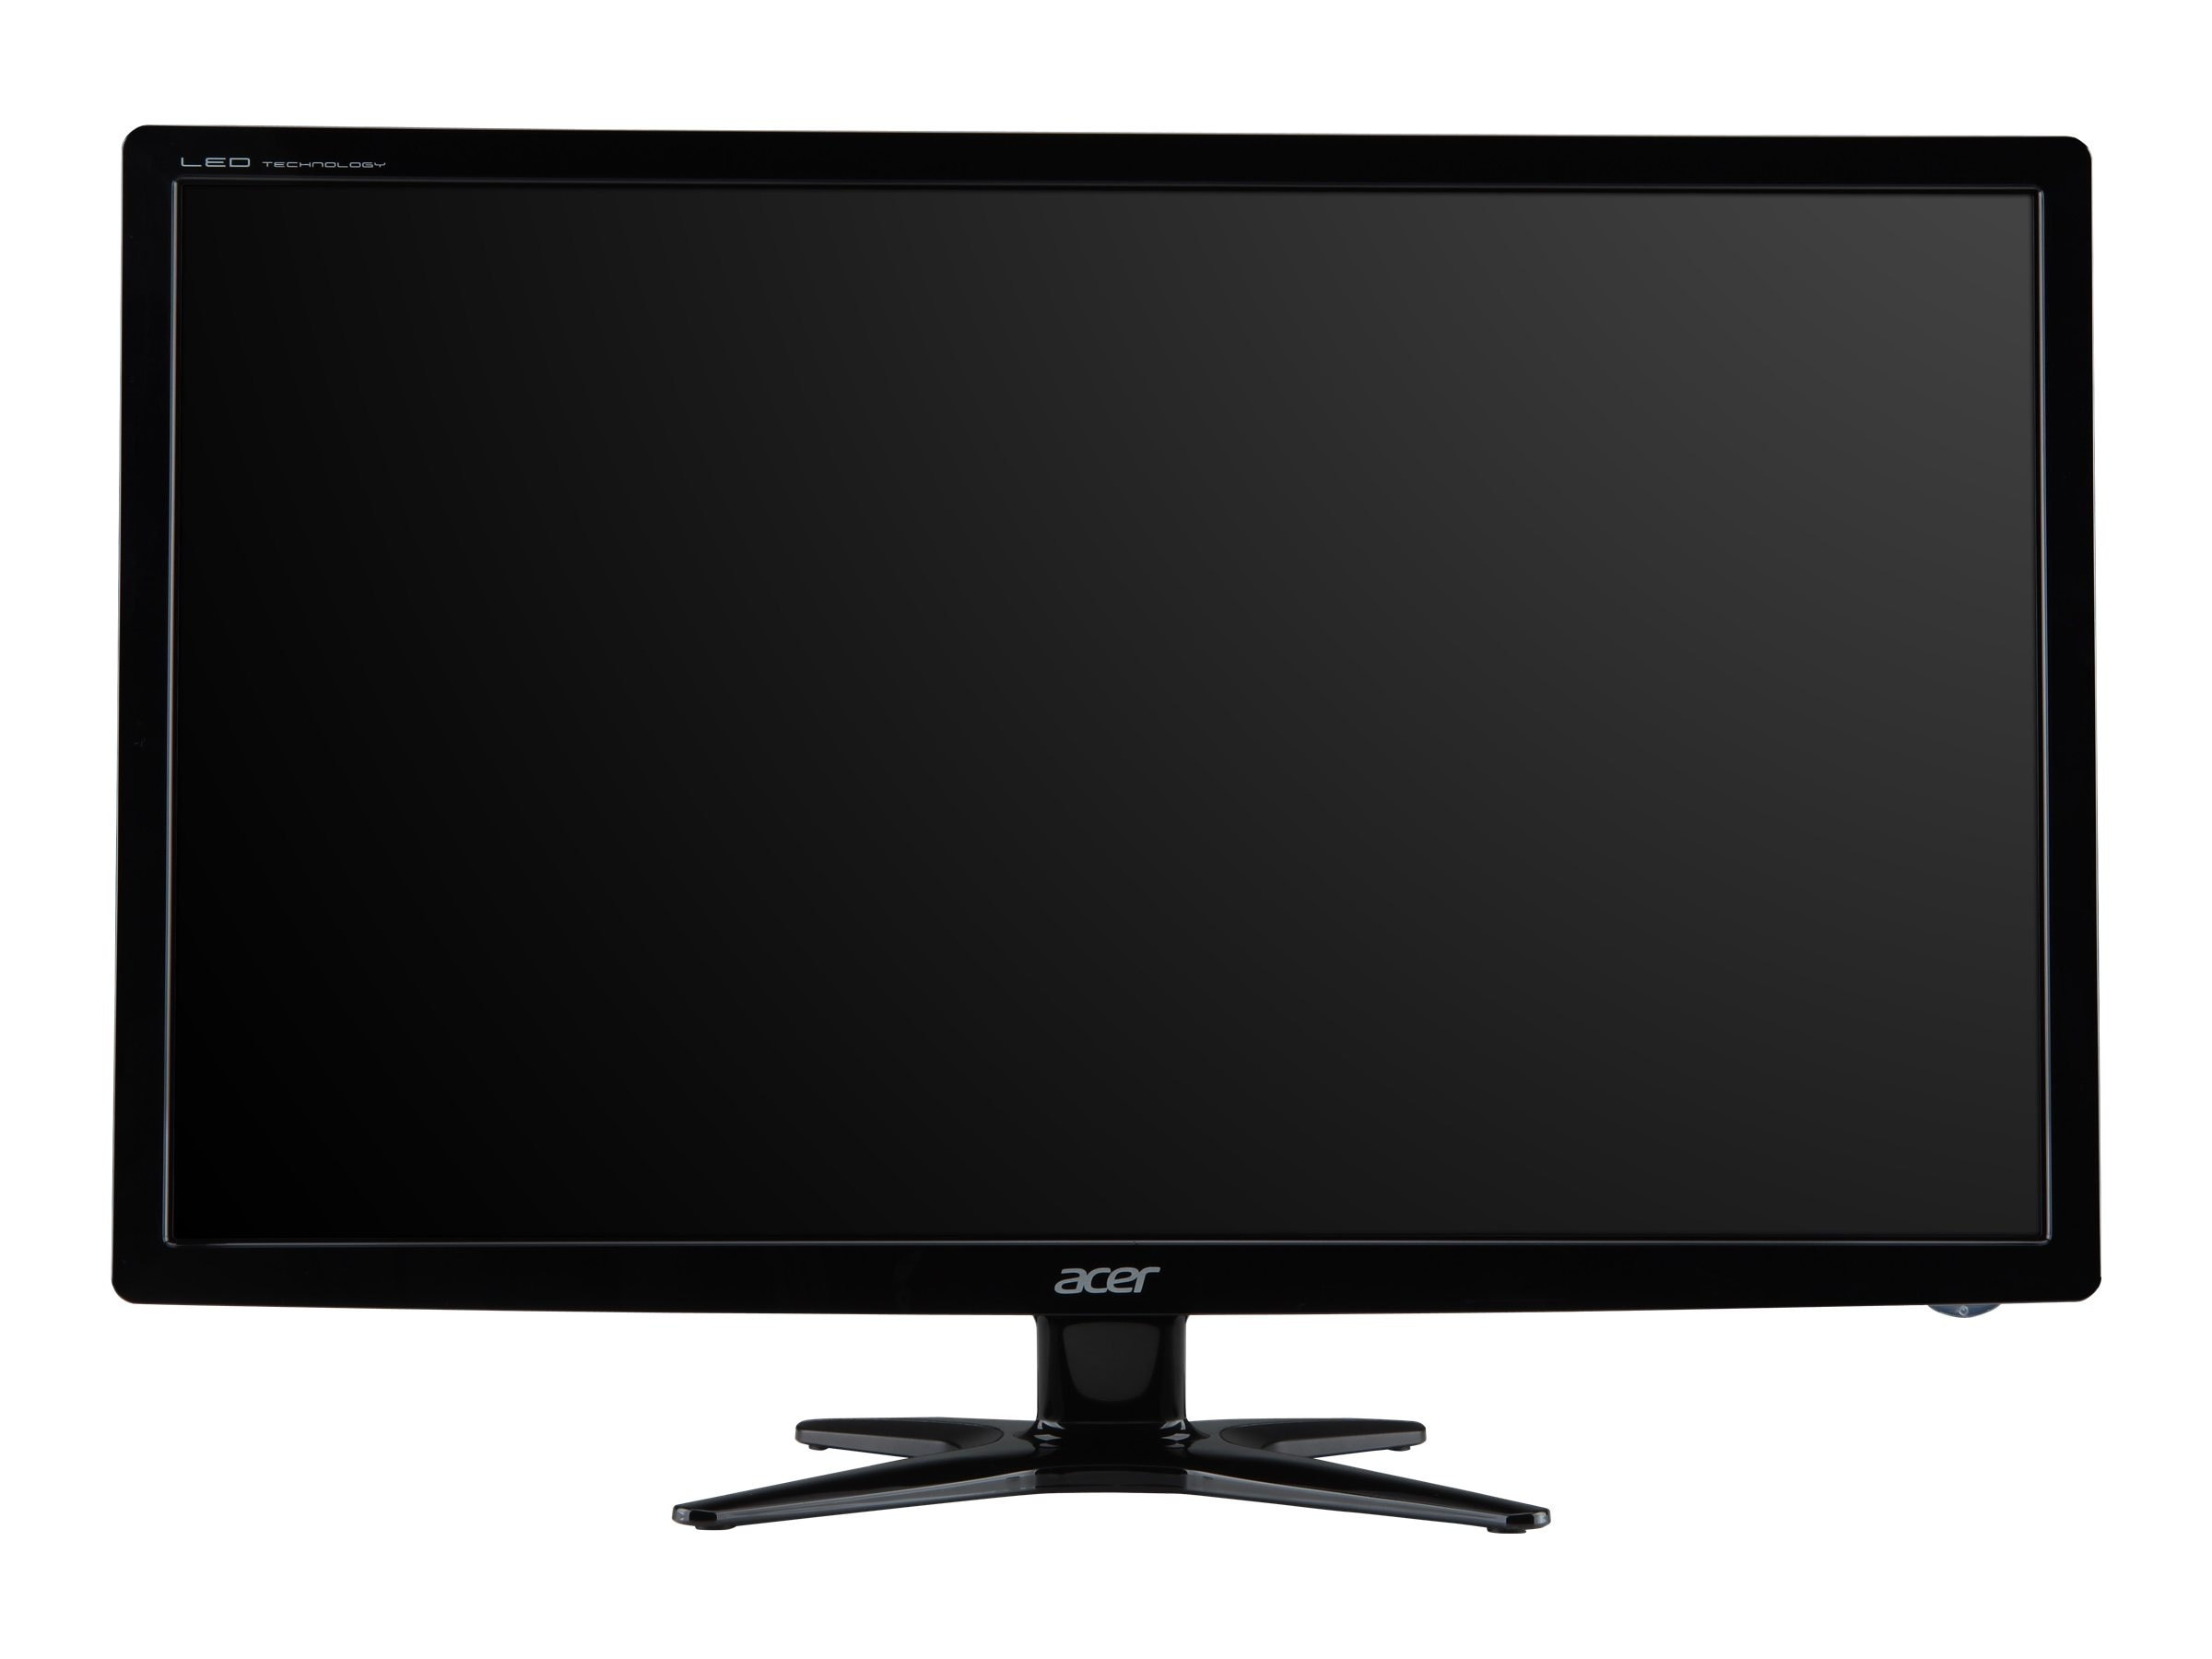 Acer 27 G276HL Full HD LED-LCD Monitor, Black